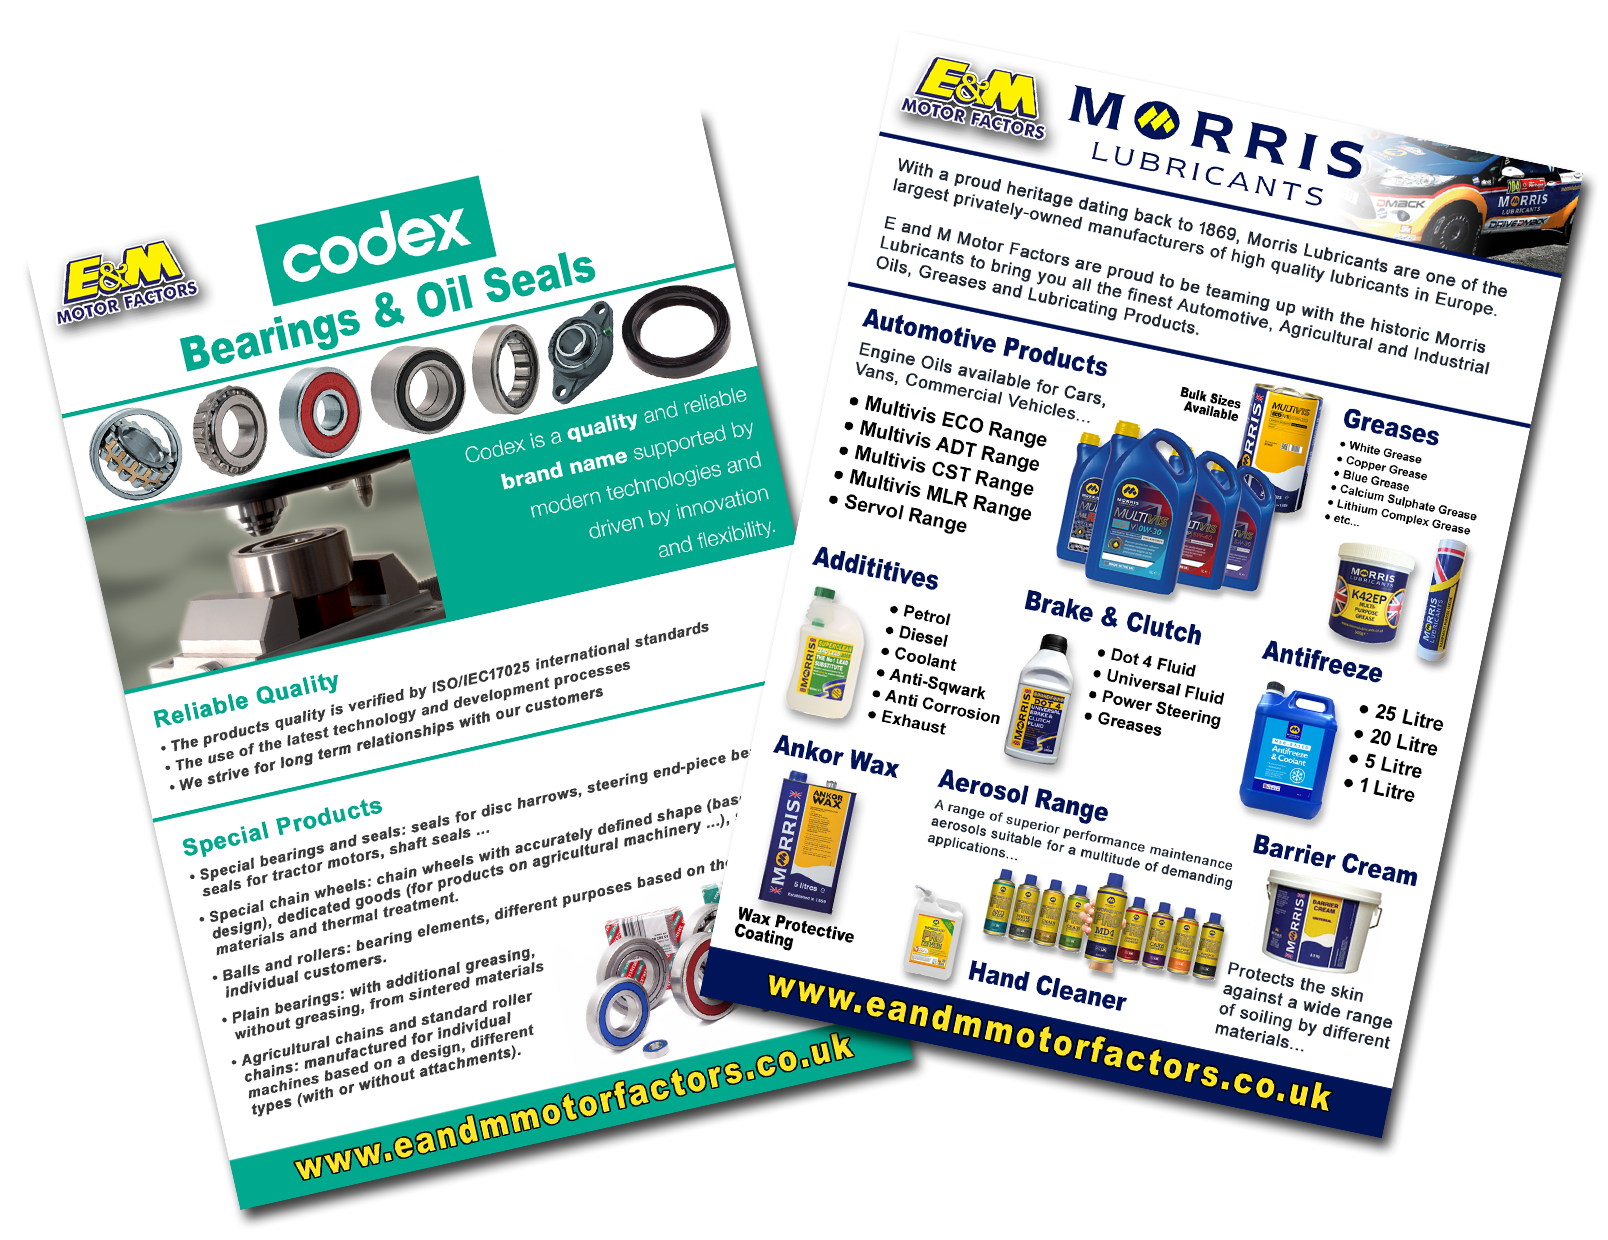 Promotions and Leaflets available in store for major brands including: Millers Oils, Codex Bearings and Seals, Sealey, SIP, Draper